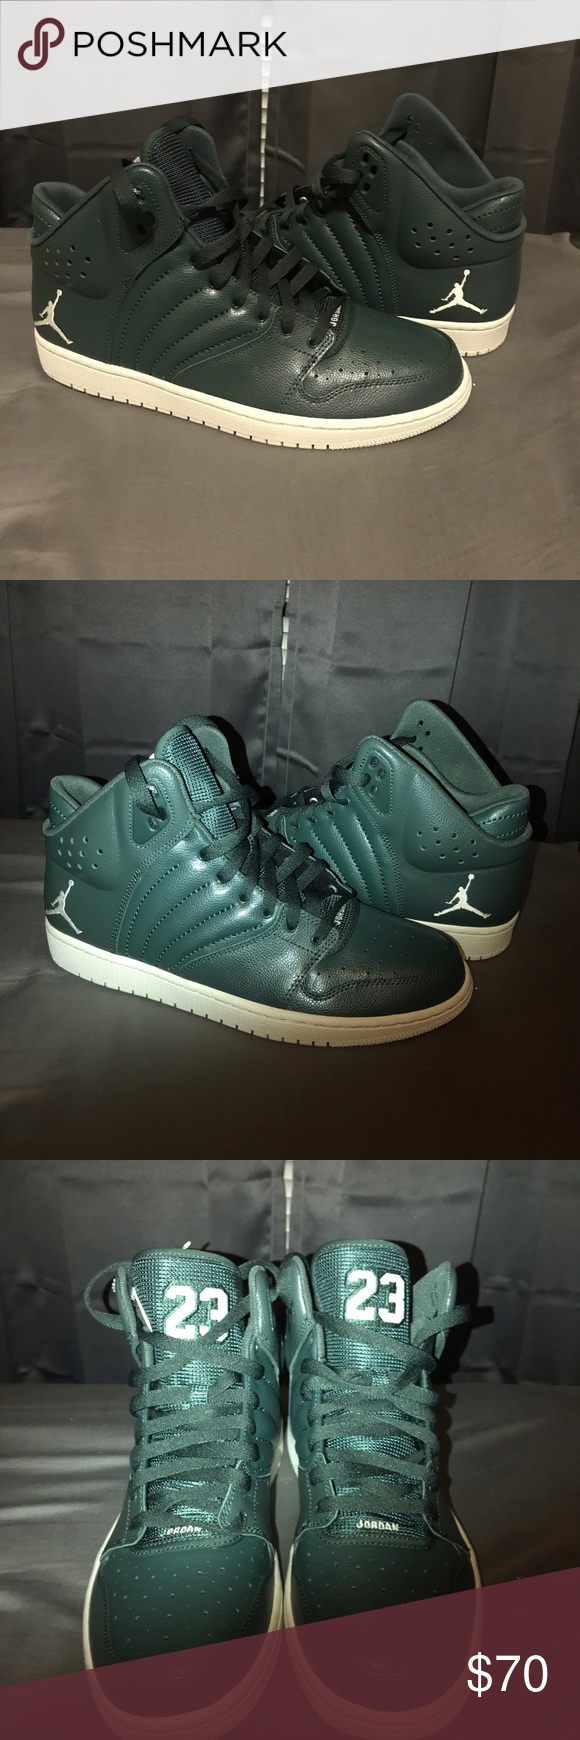 6bdfd697afe MENS NIKE AIR JORDAN 1 FLIGHT 4 TRAINING LIFESTYLE MENS NIKE AIR JORDAN 1  FLIGHT 4 TRAINING LIFESTYLE SNEAKERS SHOES GREEN WHITE 10.